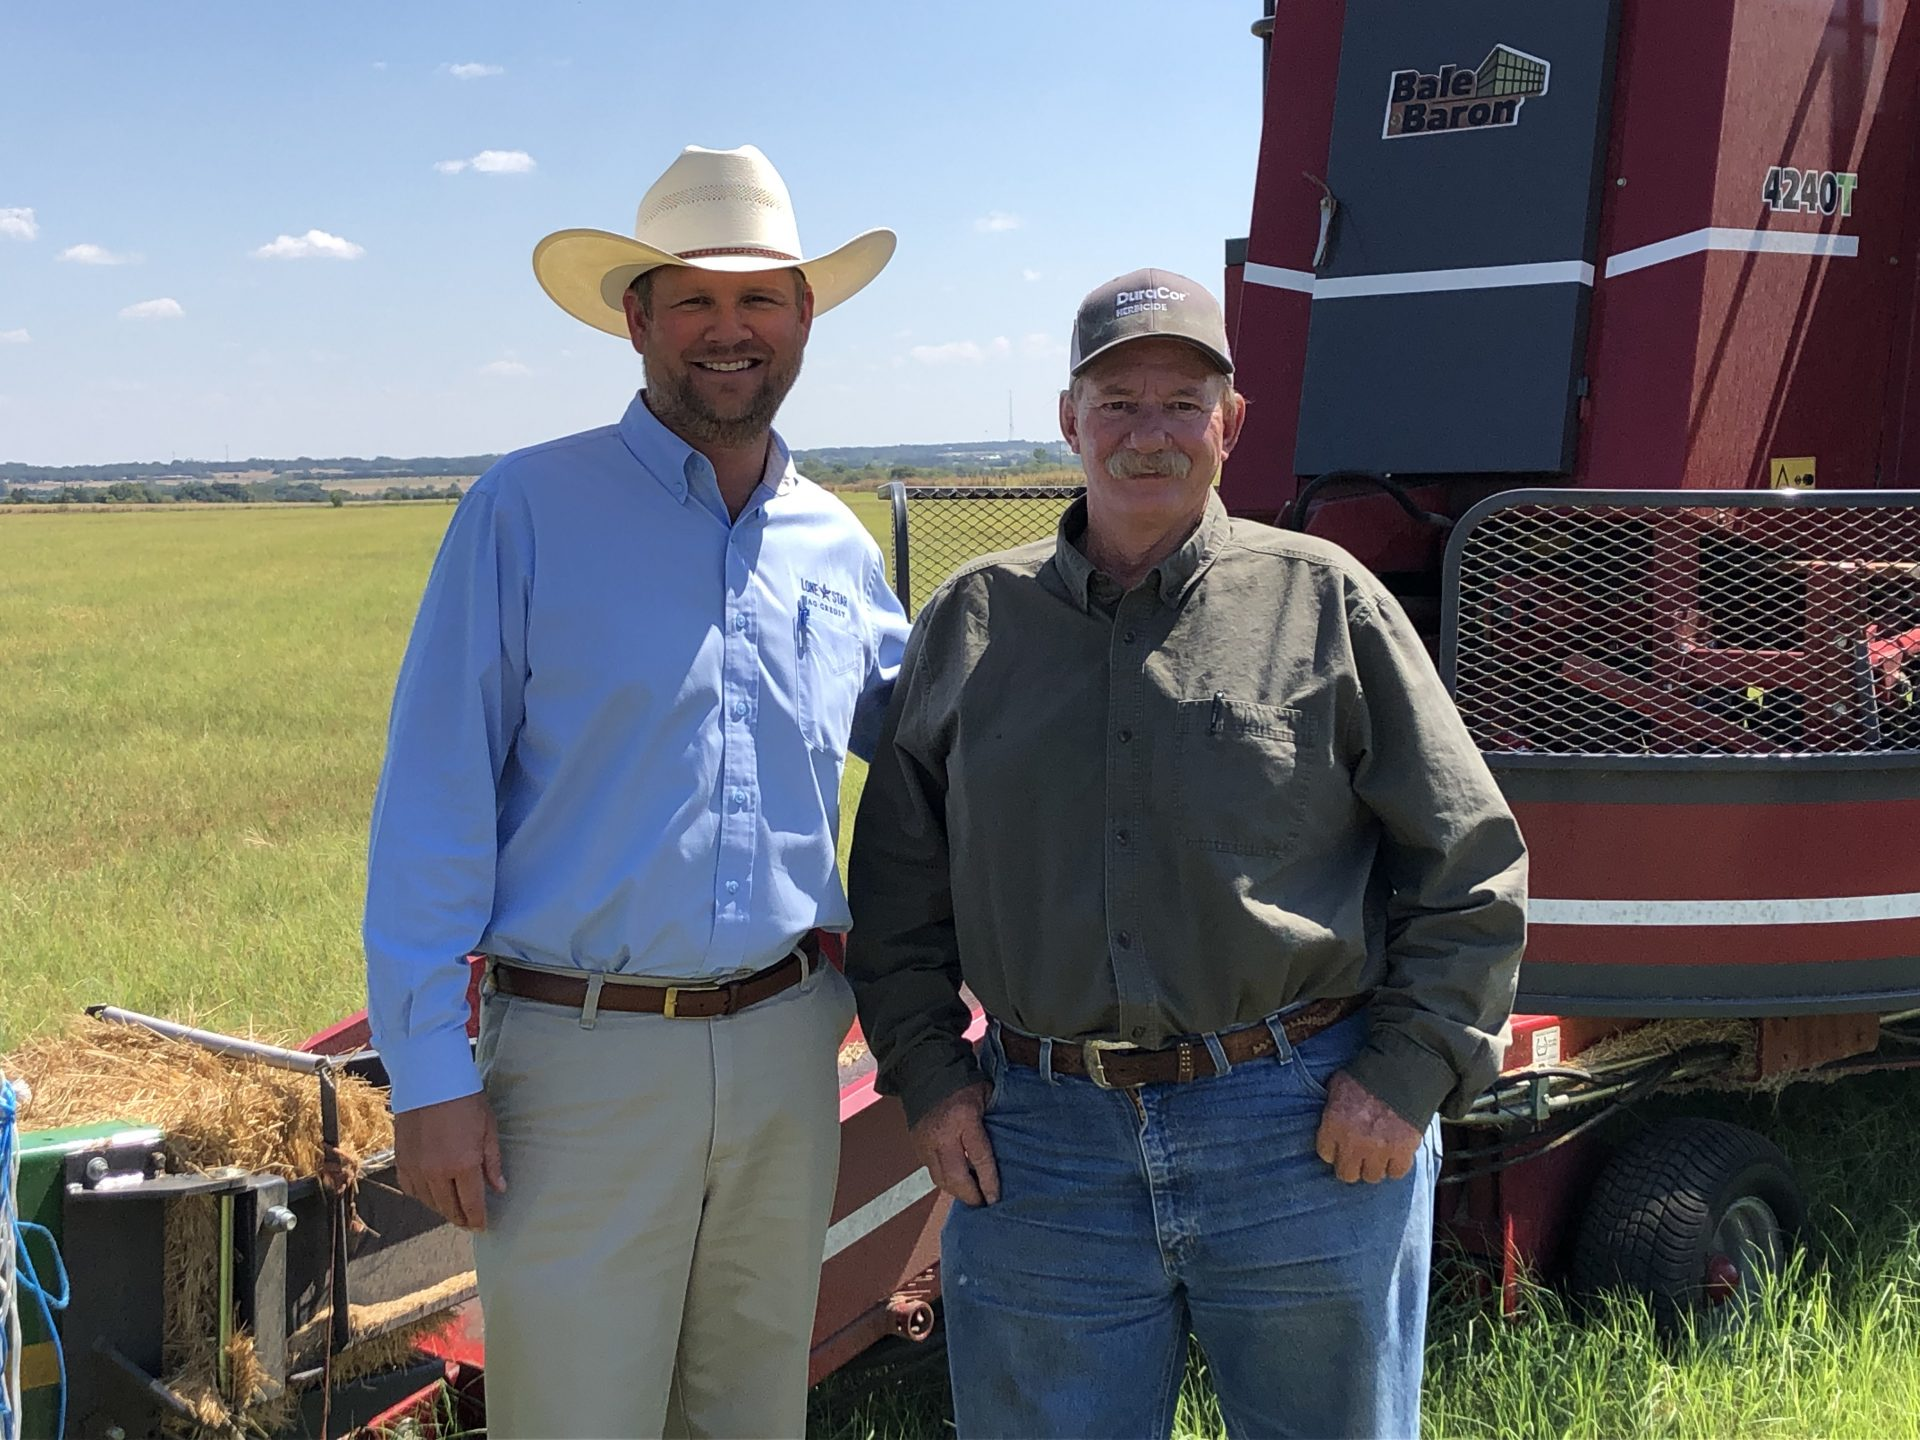 Lone Star Ag Credit Georgetown office Vice President Lending Nathan Winstead with customer in front of hay baler.